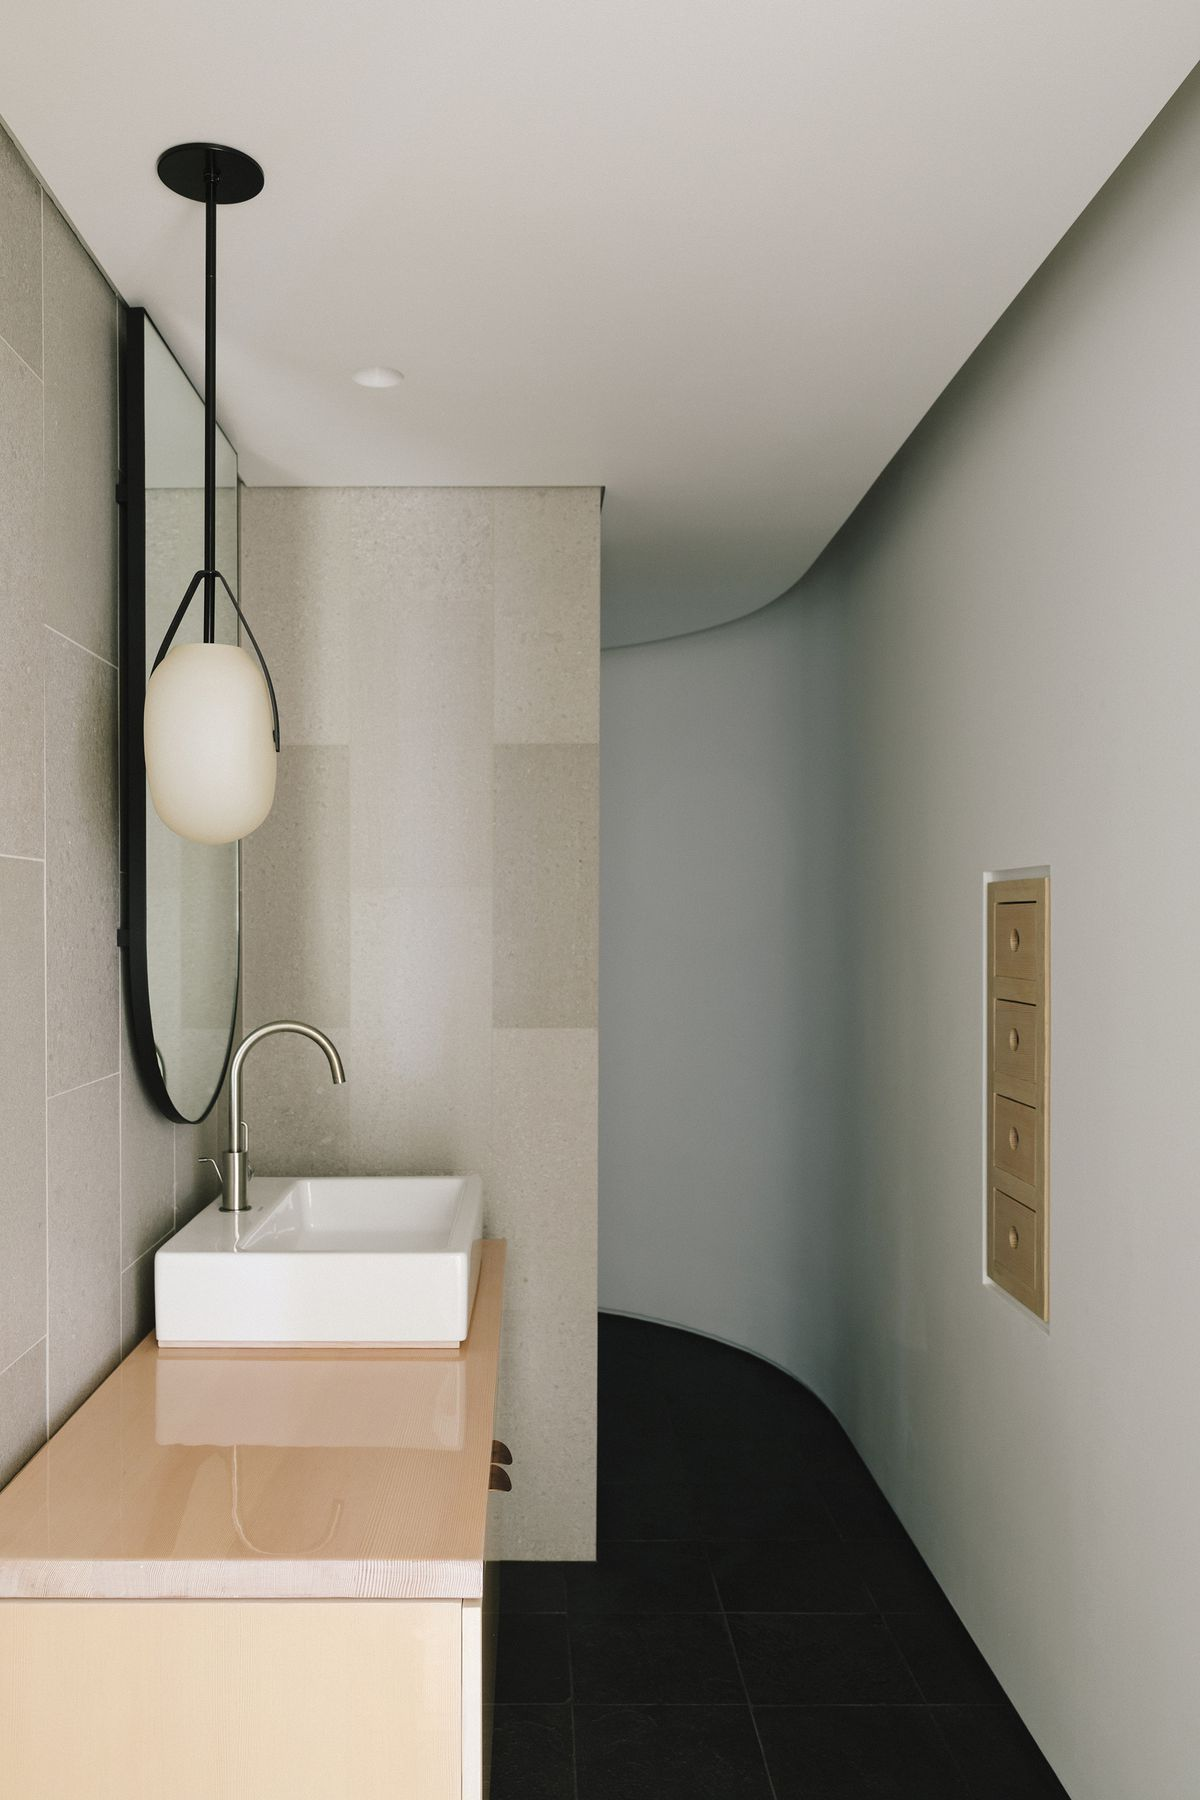 A bathroom. The walls are painted white. There is a sink. The cabinetry is wooden. There is a mirror over the sink and a hanging black and white light fixture.